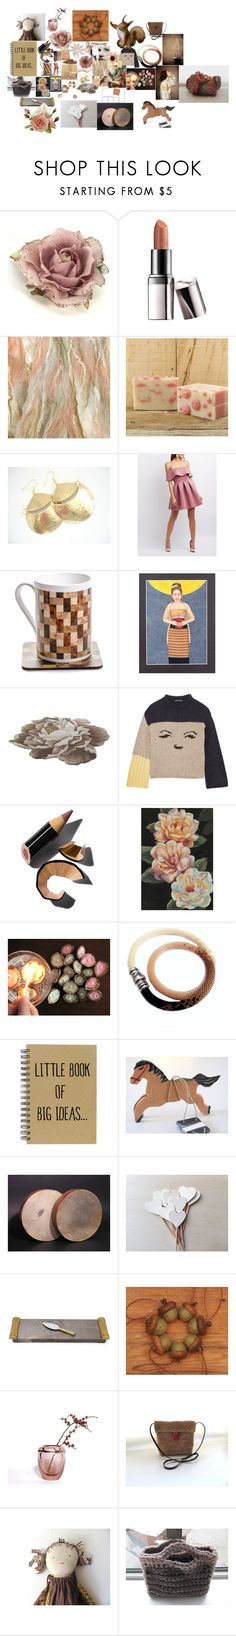 """Mix MORNING"" by talma-vardi ❤ liked on Polyvore featuring interior, interiors, interior design, home, home decor, interior decorating, Monsoon, Sephora Collection, Barry M and Linda Farrow"